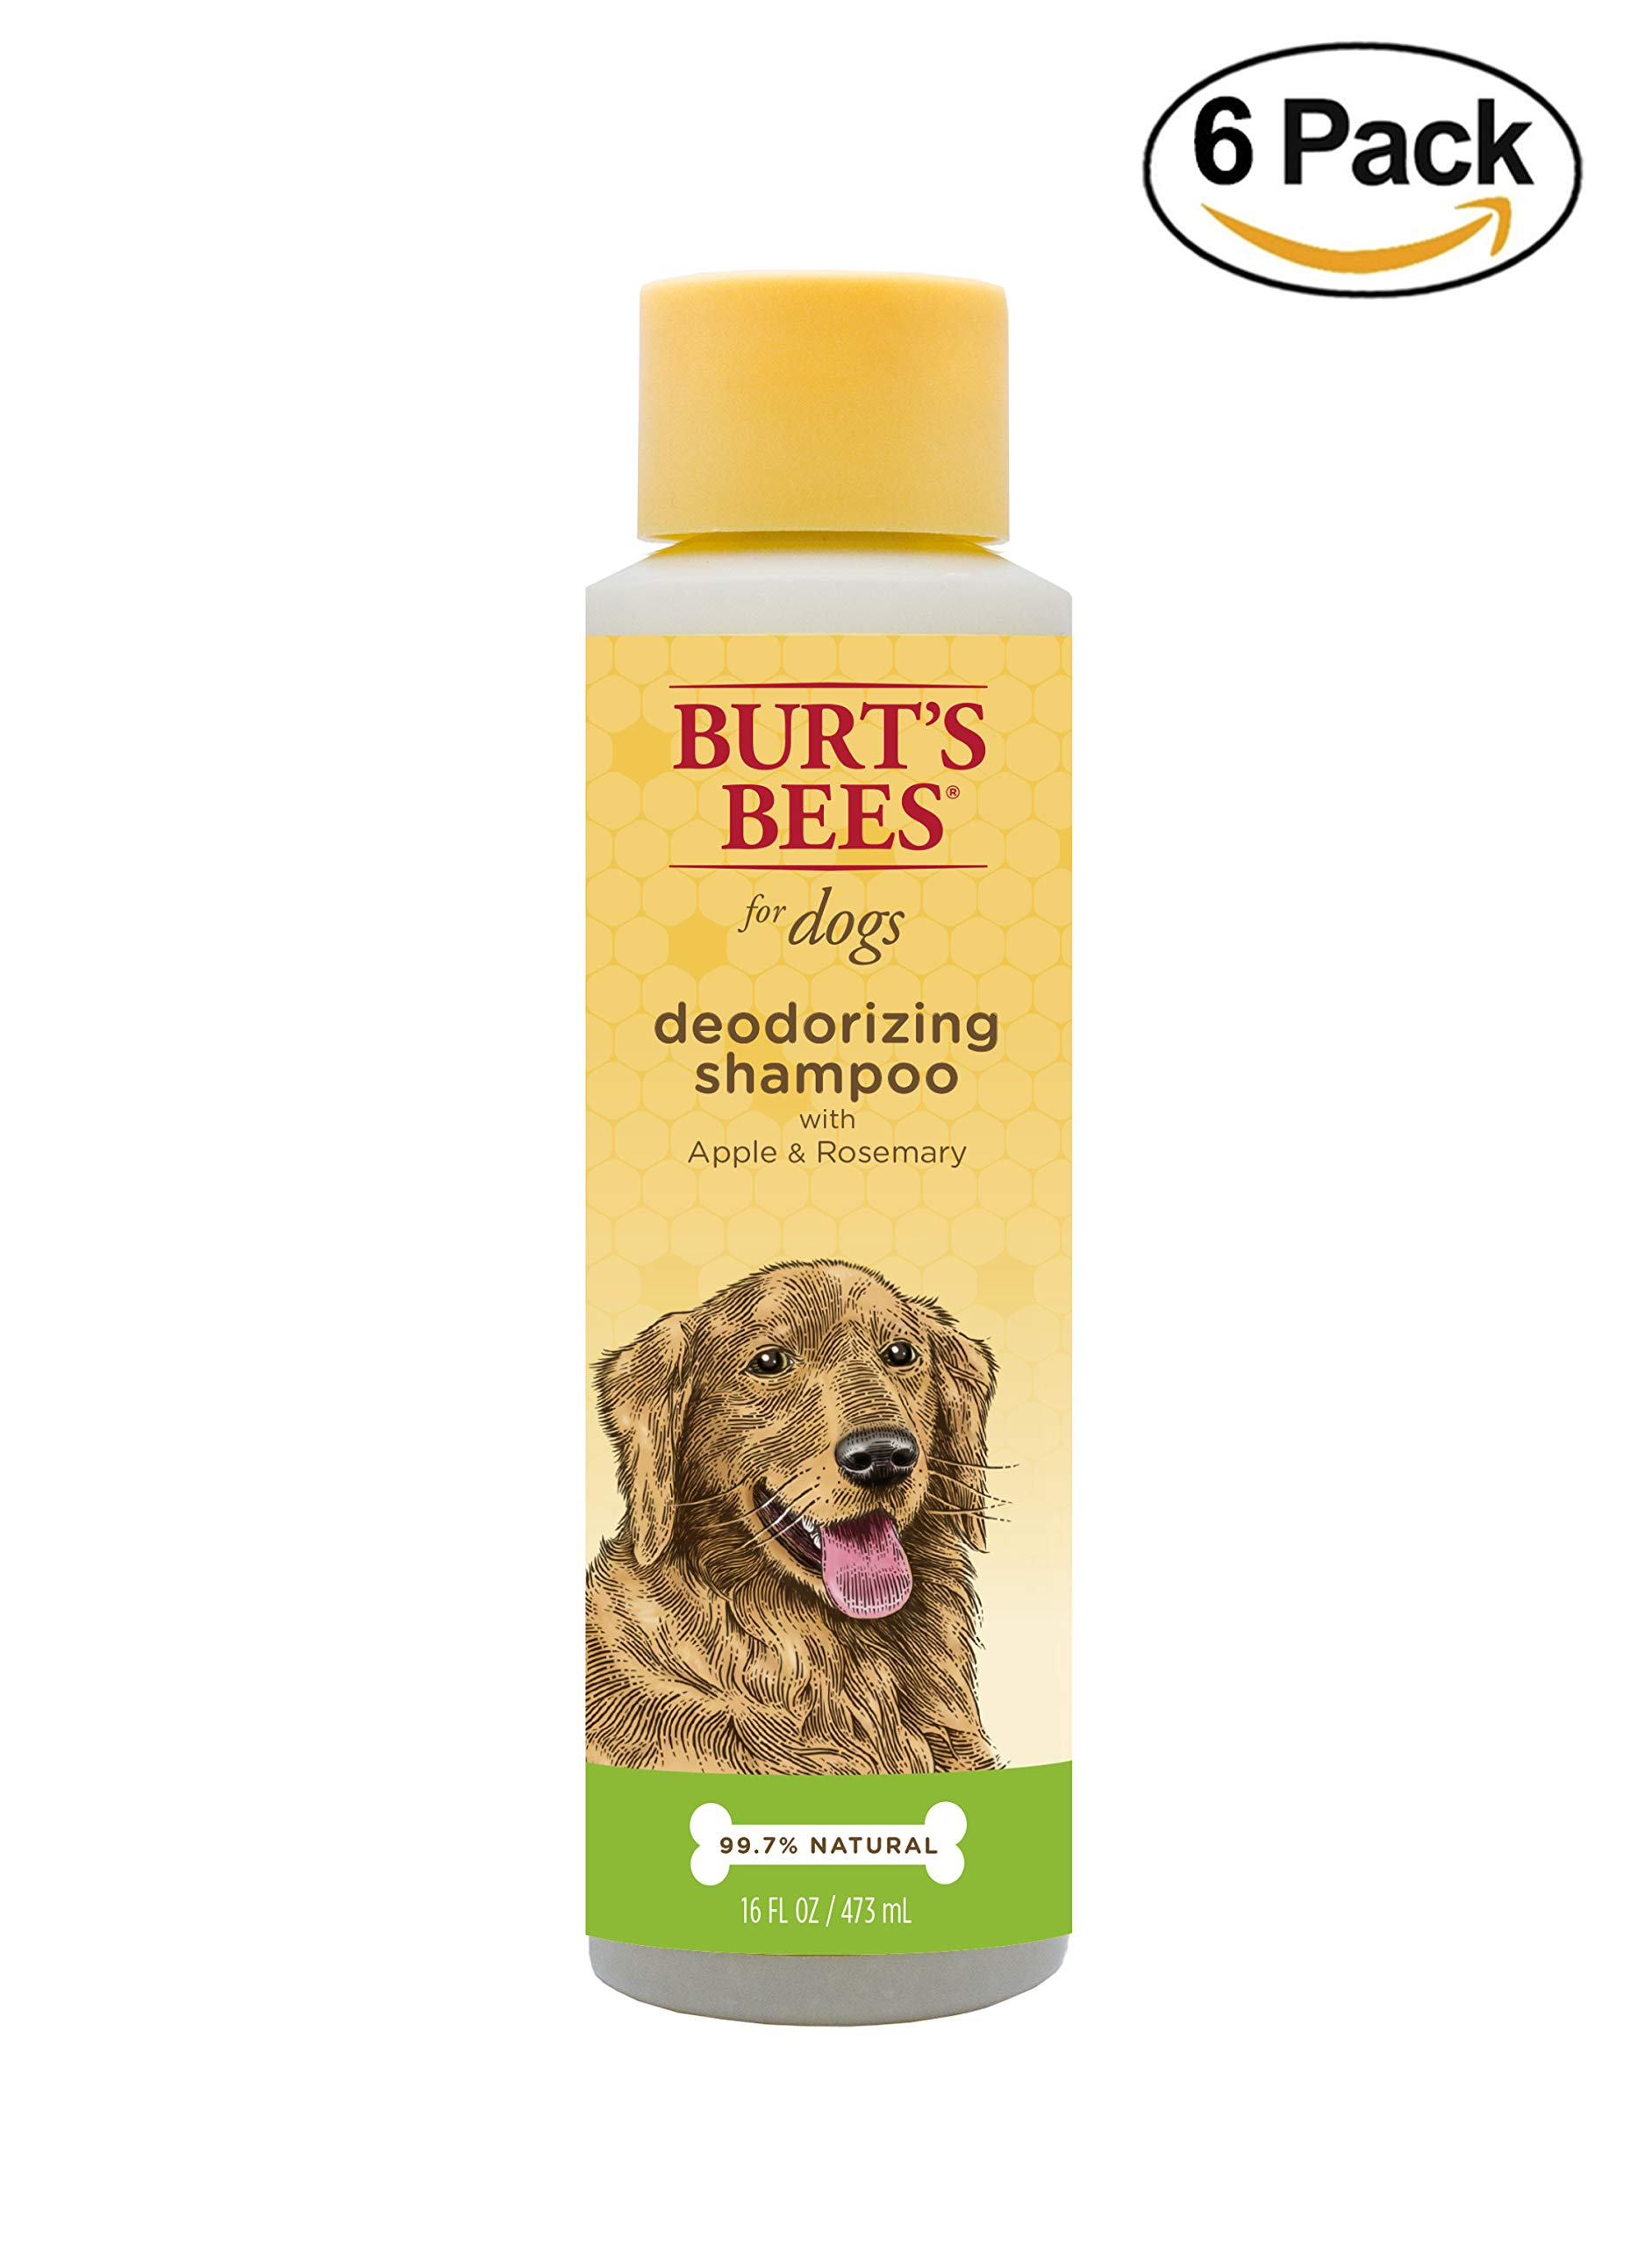 Burt's Bees All Natural Deodorizing Shampoo for Dogs | Best Dog Shampoo for Smelly Dogs | Made with Apple & Rosemary, 16 Ounces - 6 Pack